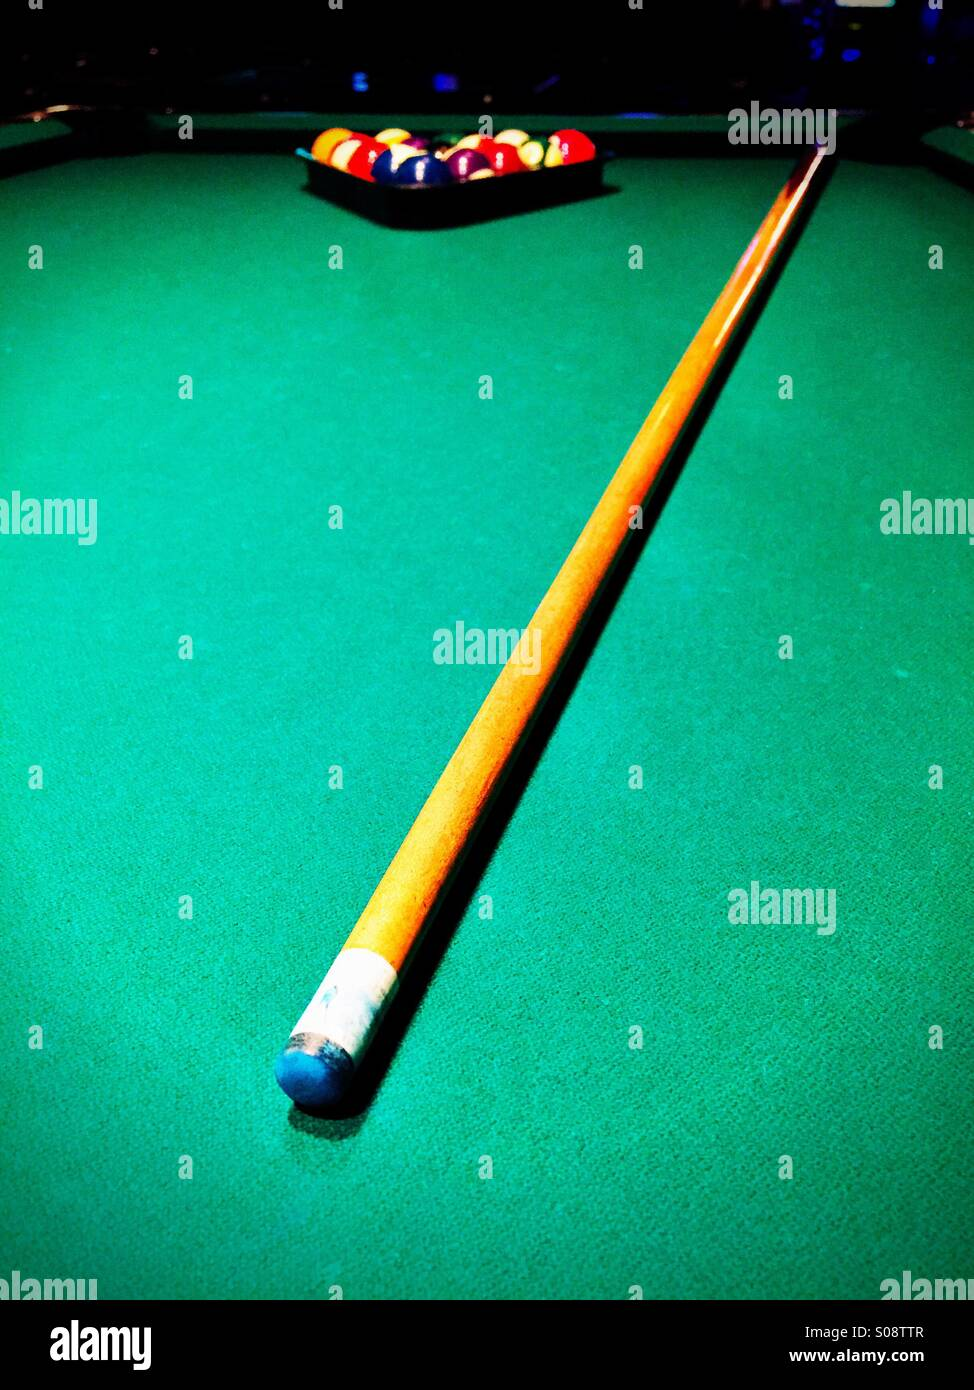 Pool Cue On The Green Felt Of A Pool Table With The Balls Racked.